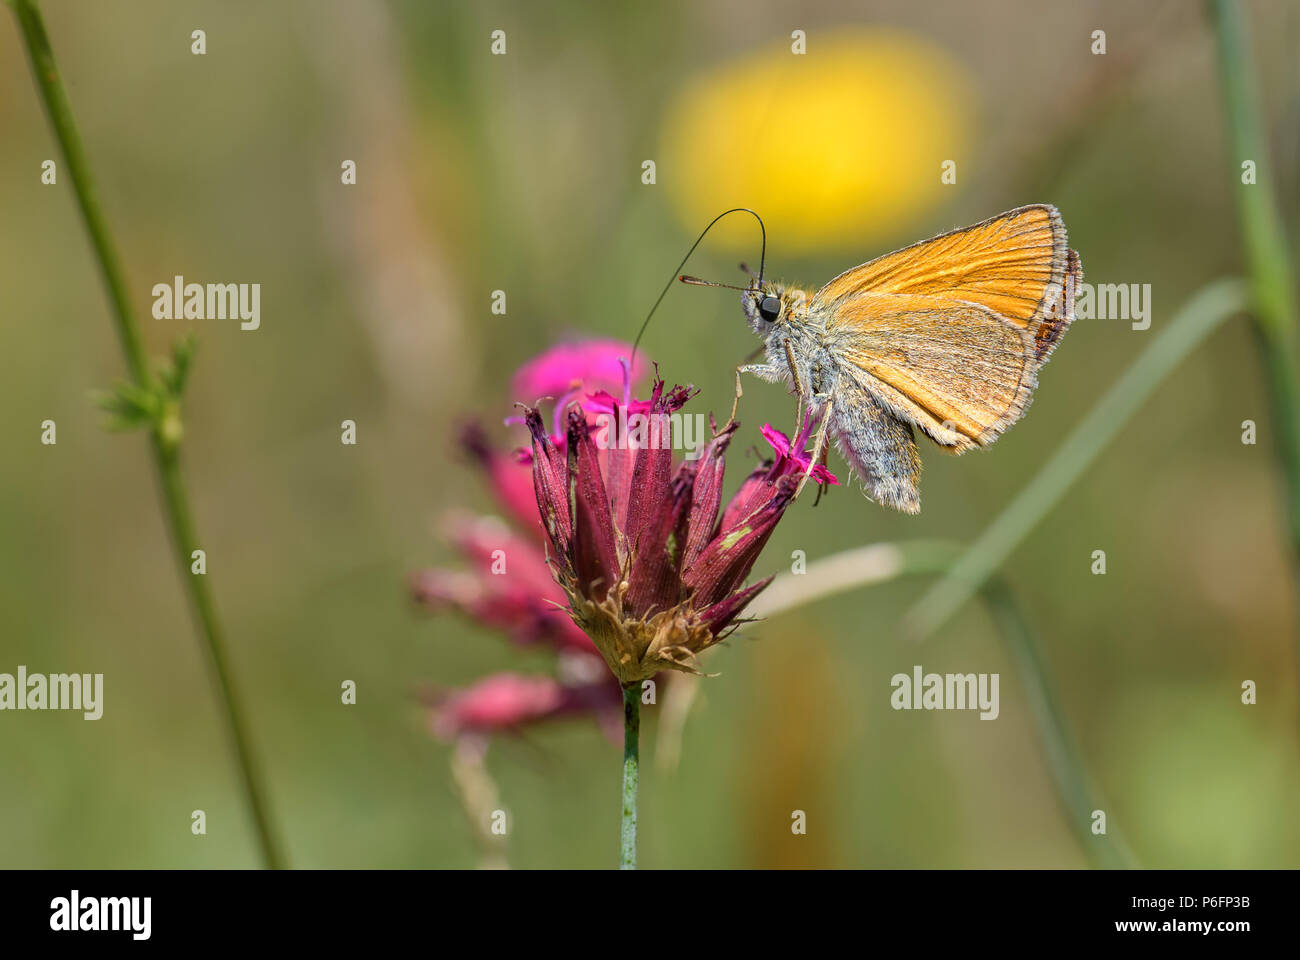 Essex Skipper - Thymelicus lineola, beautiful small orange butterfly from European meadows, Eastern Rodope mountains, Bulgaria. - Stock Image